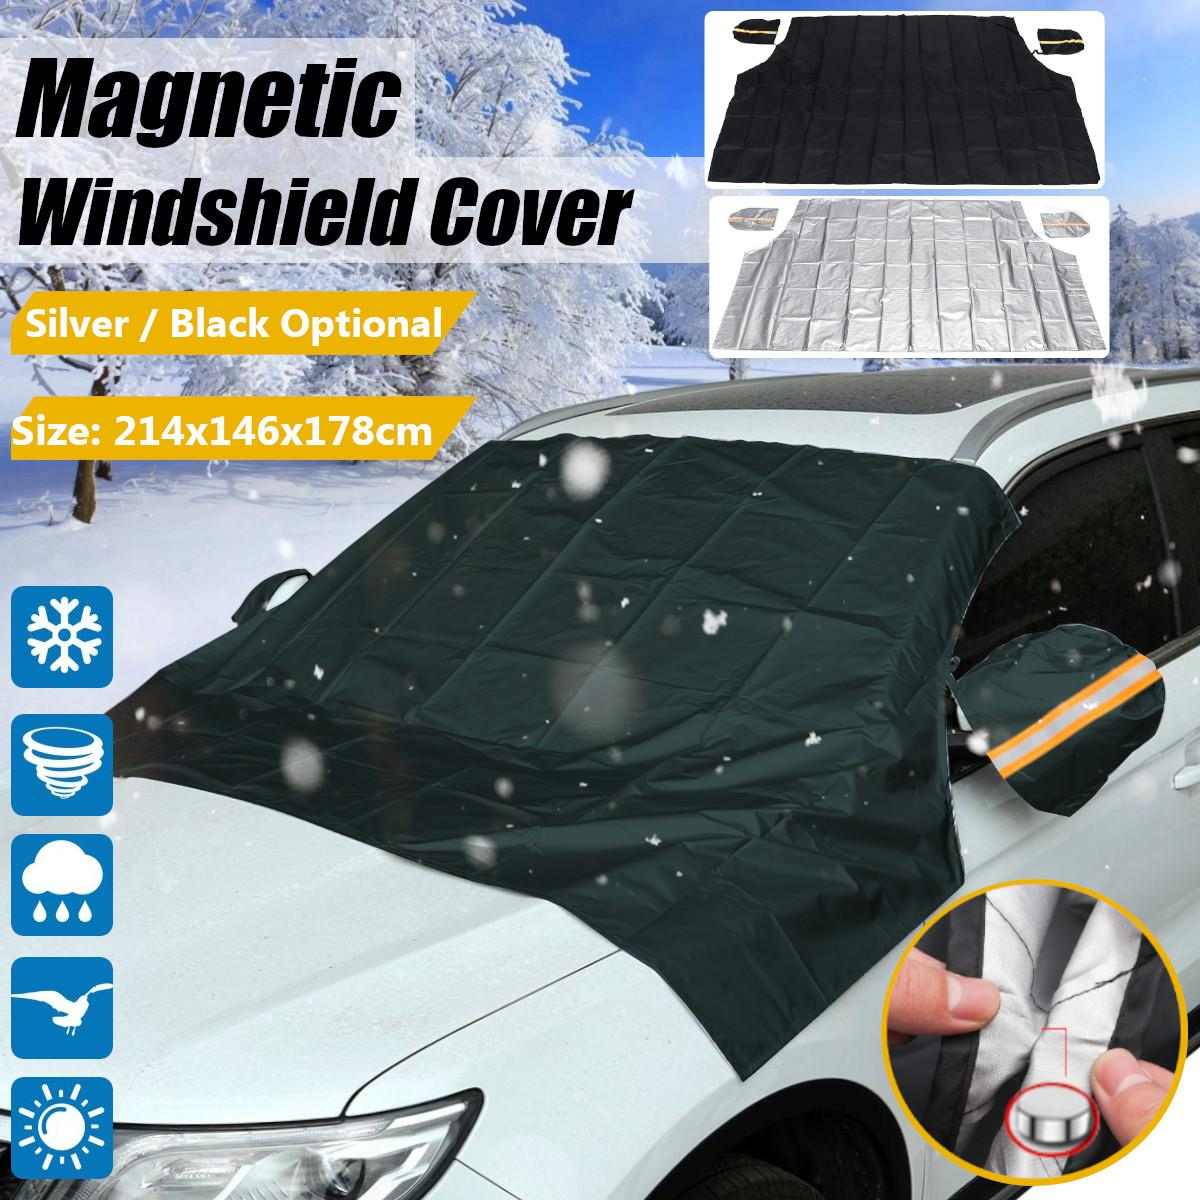 214x146x178cm Car Magnetic Pickup Trucks SUV Windshield Snow Sun Dust Cover Ice Frost with Mirror Protector Shield